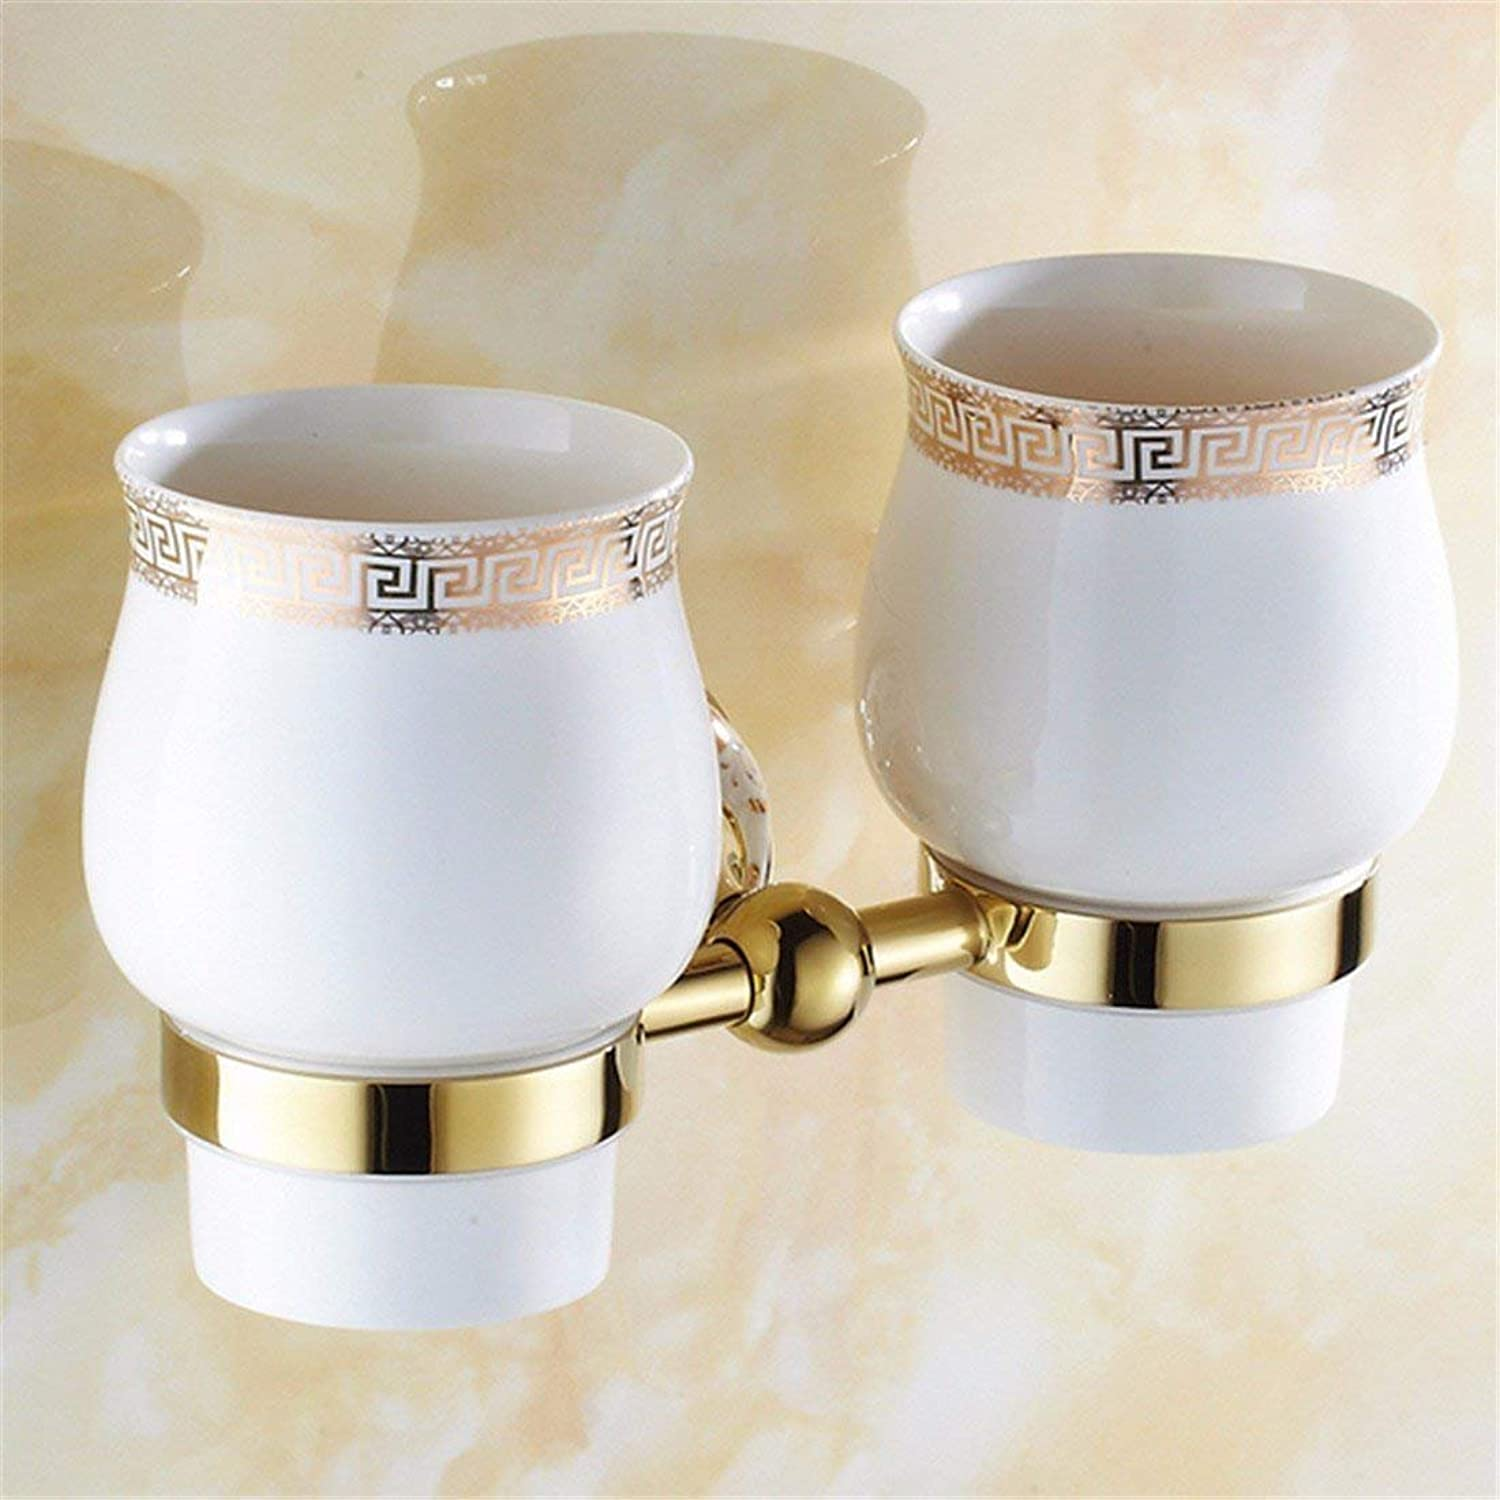 Bathroom in Copper Ceramic European golden Hook Jacket Towels, Double Cup